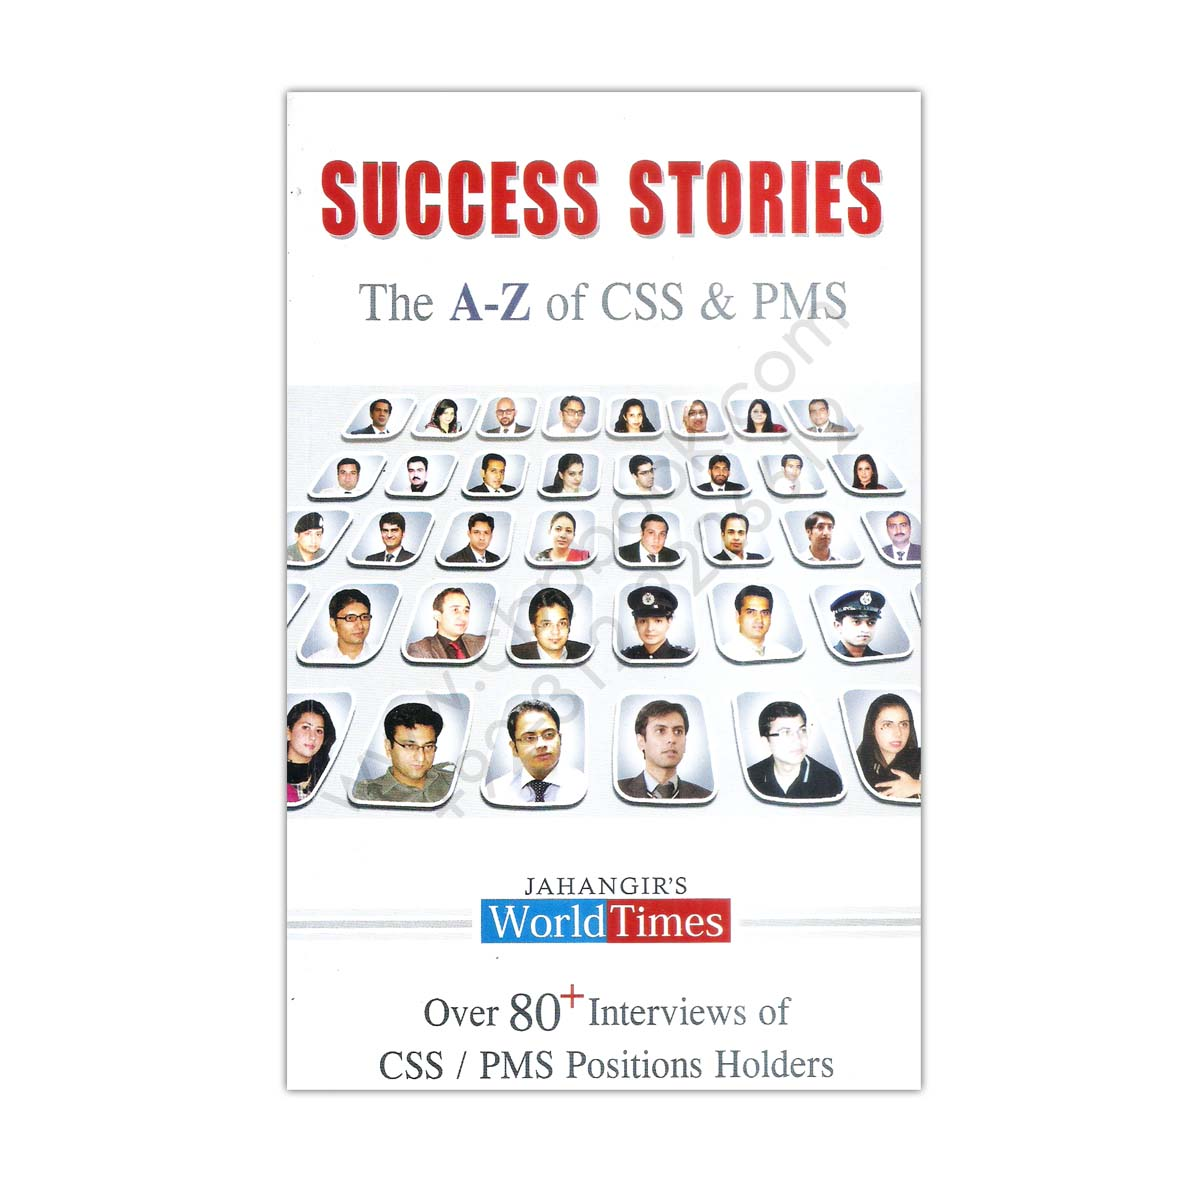 jwt success stories the a-z of css and pms over 80+ interviews